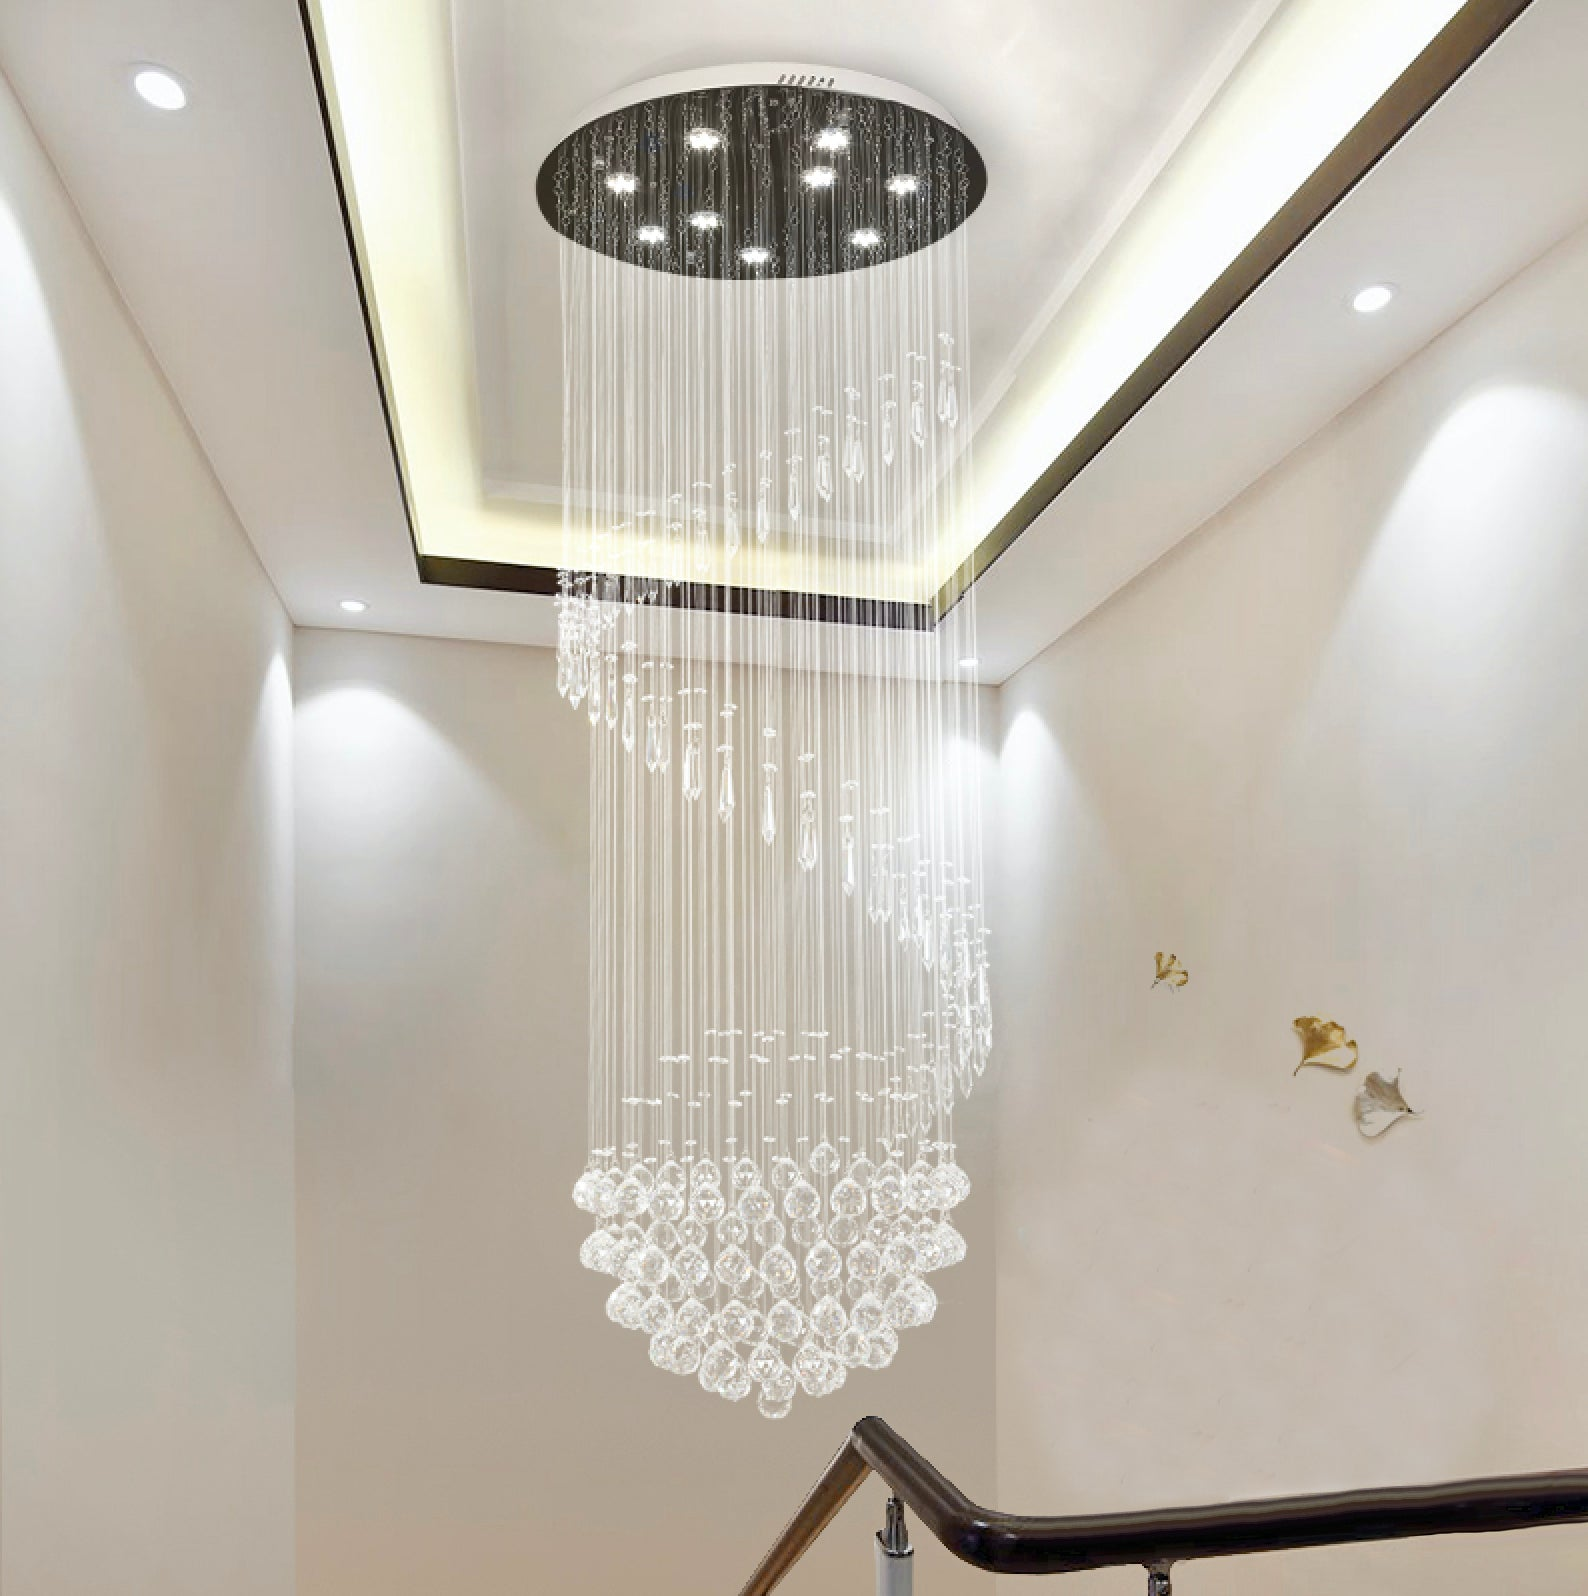 Single Spiral Hemisphere Rain Drop Crystal Chandelier - Staircase